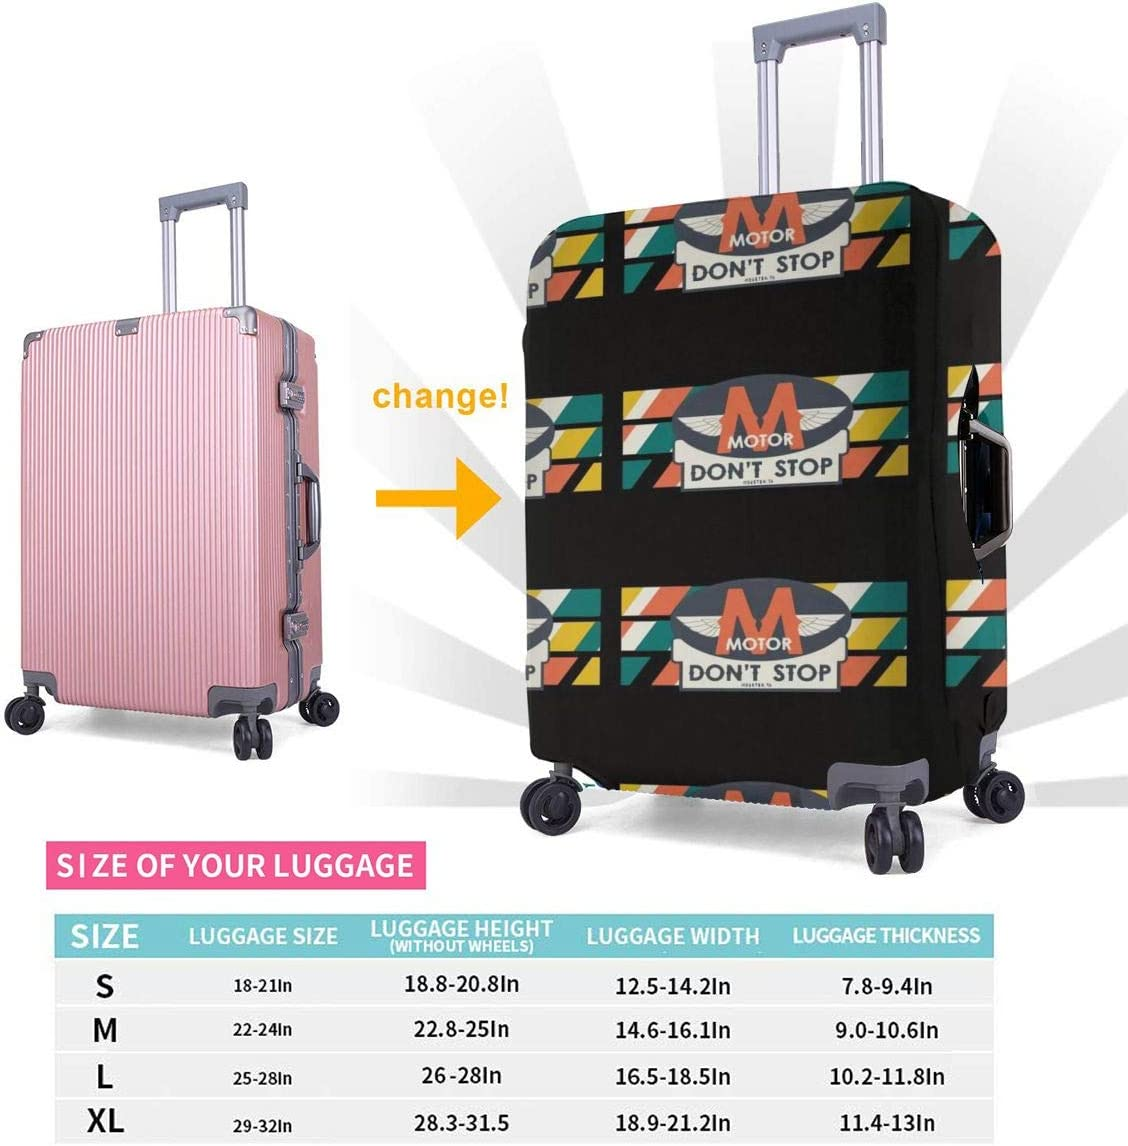 Travel Luggage Cover Spandex Suitcase Protector Bag Washable Zipper Baggage Covers Motor Dont Stop Colorful Letters Fit 18 To 32 Inch